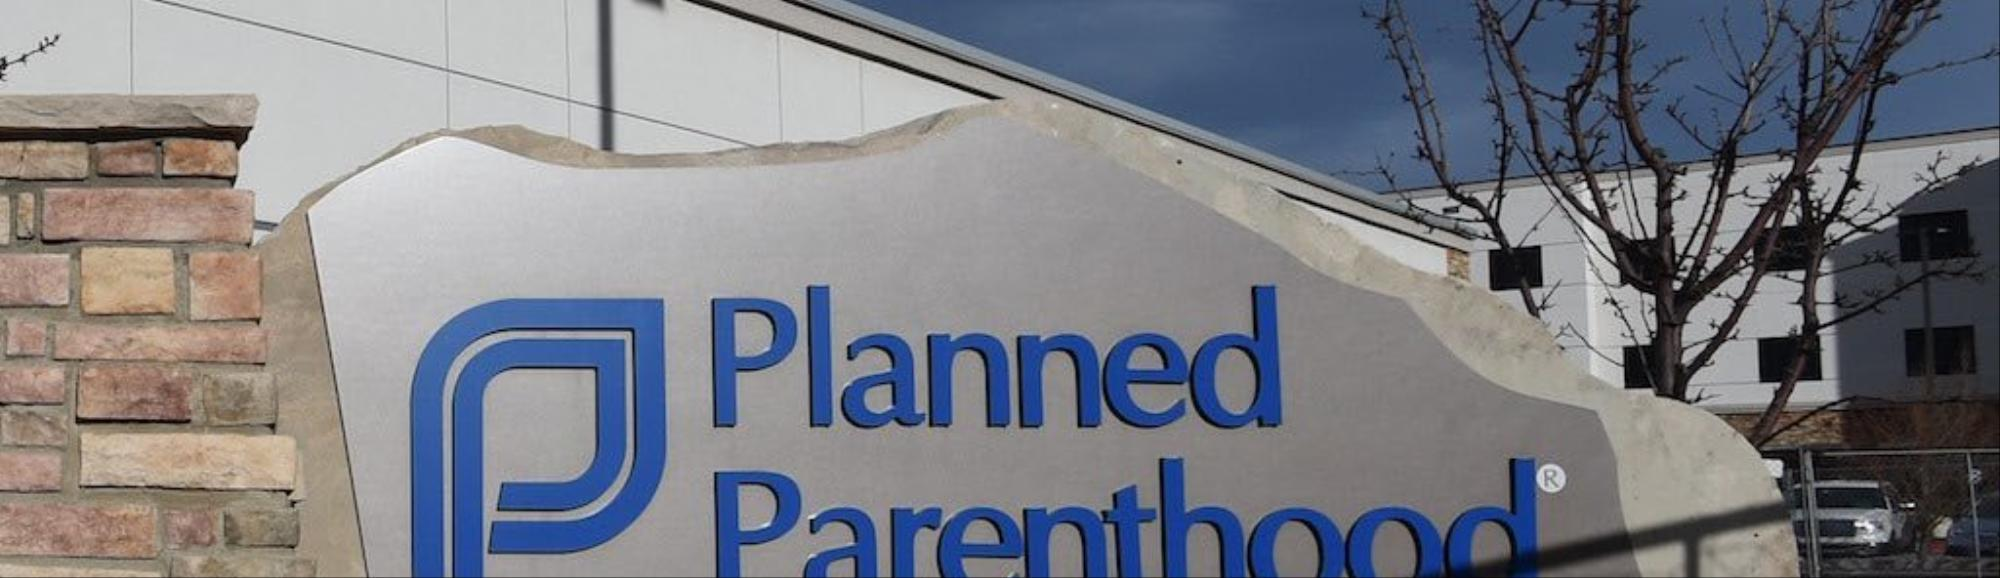 "Planned Parenthood receives ""outpouring of support"" after Trump's election"